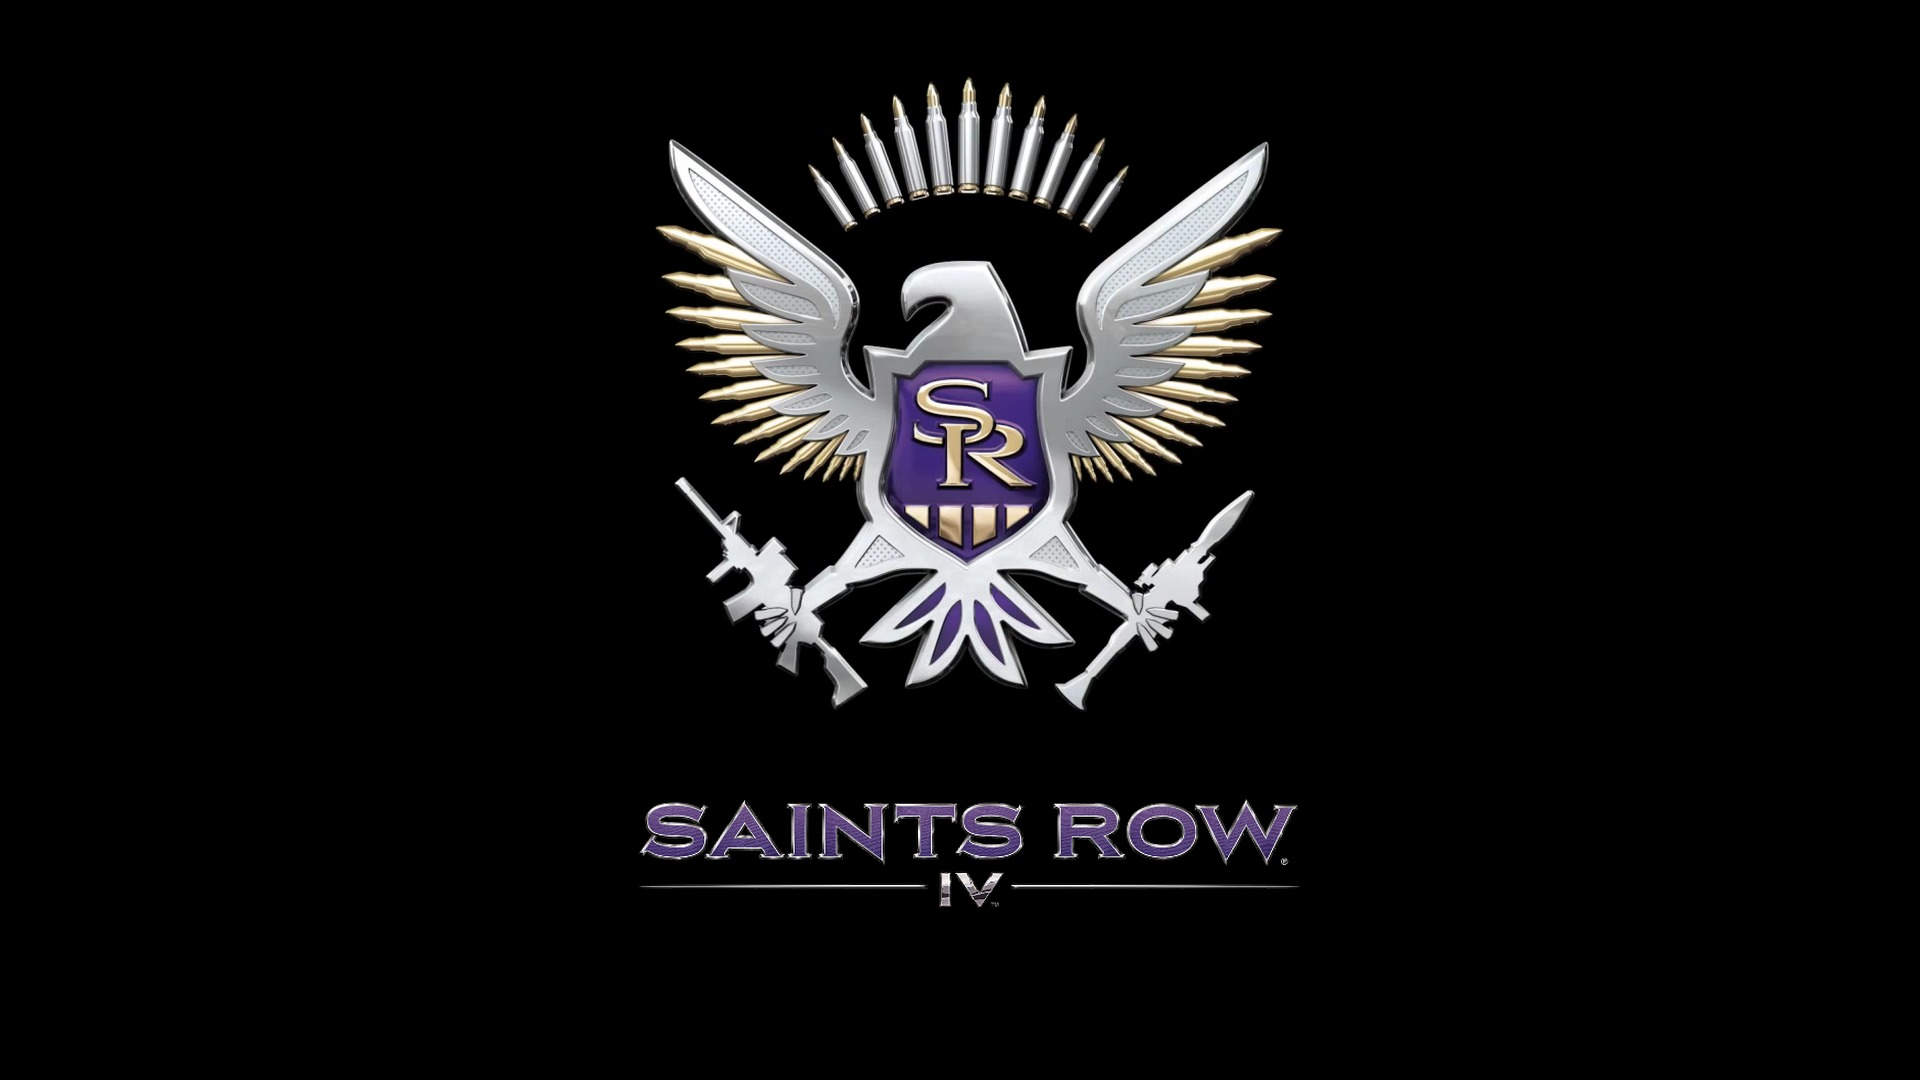 saints row logo wallpaper wwwpixsharkcom images